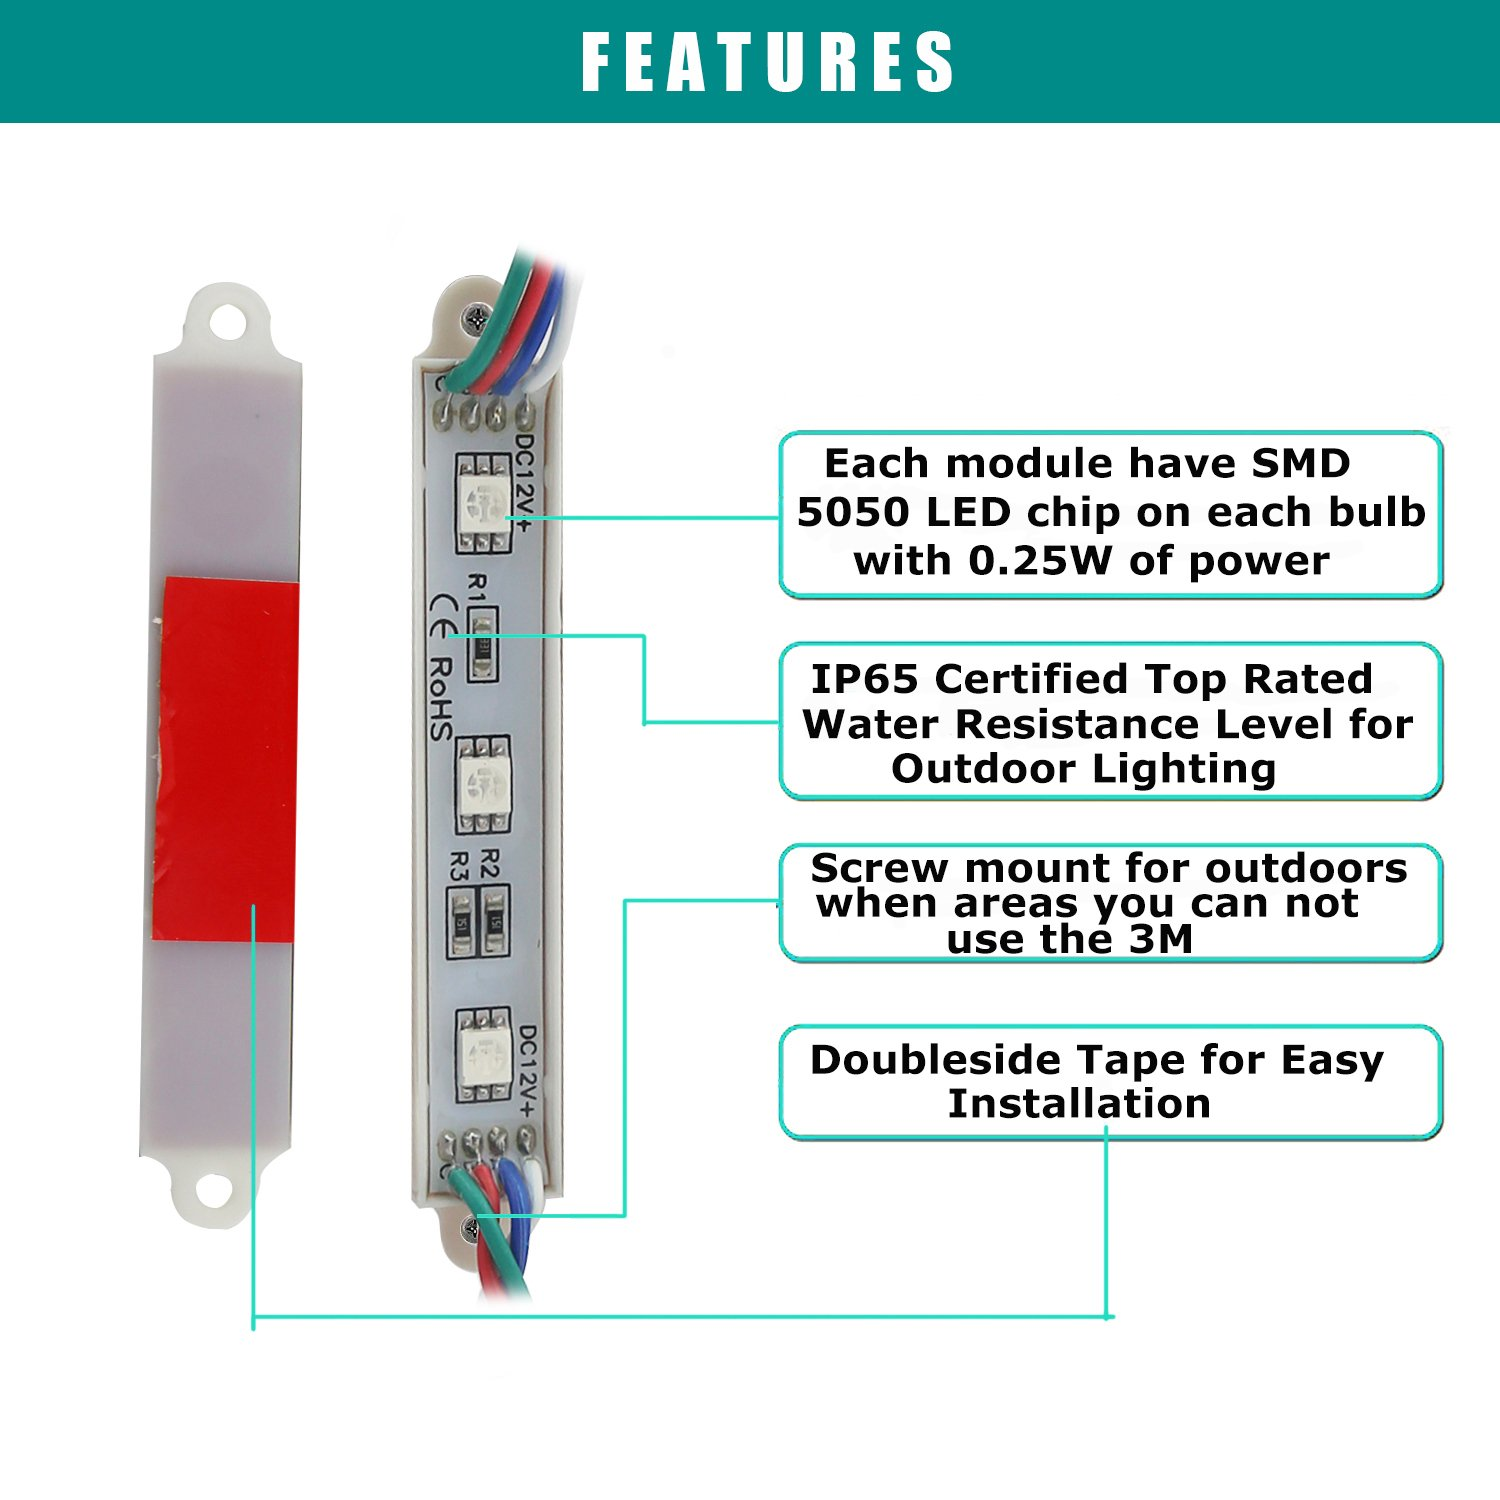 Storefront Lights, Pomelotree 2 Pack 3 Led 40PCS 5050 Super Bright LED Module Lights Waterproof Decorative Light with Tape Adhesive for Store Window Lighting and Advertising Signs by Pomelotree (Image #8)